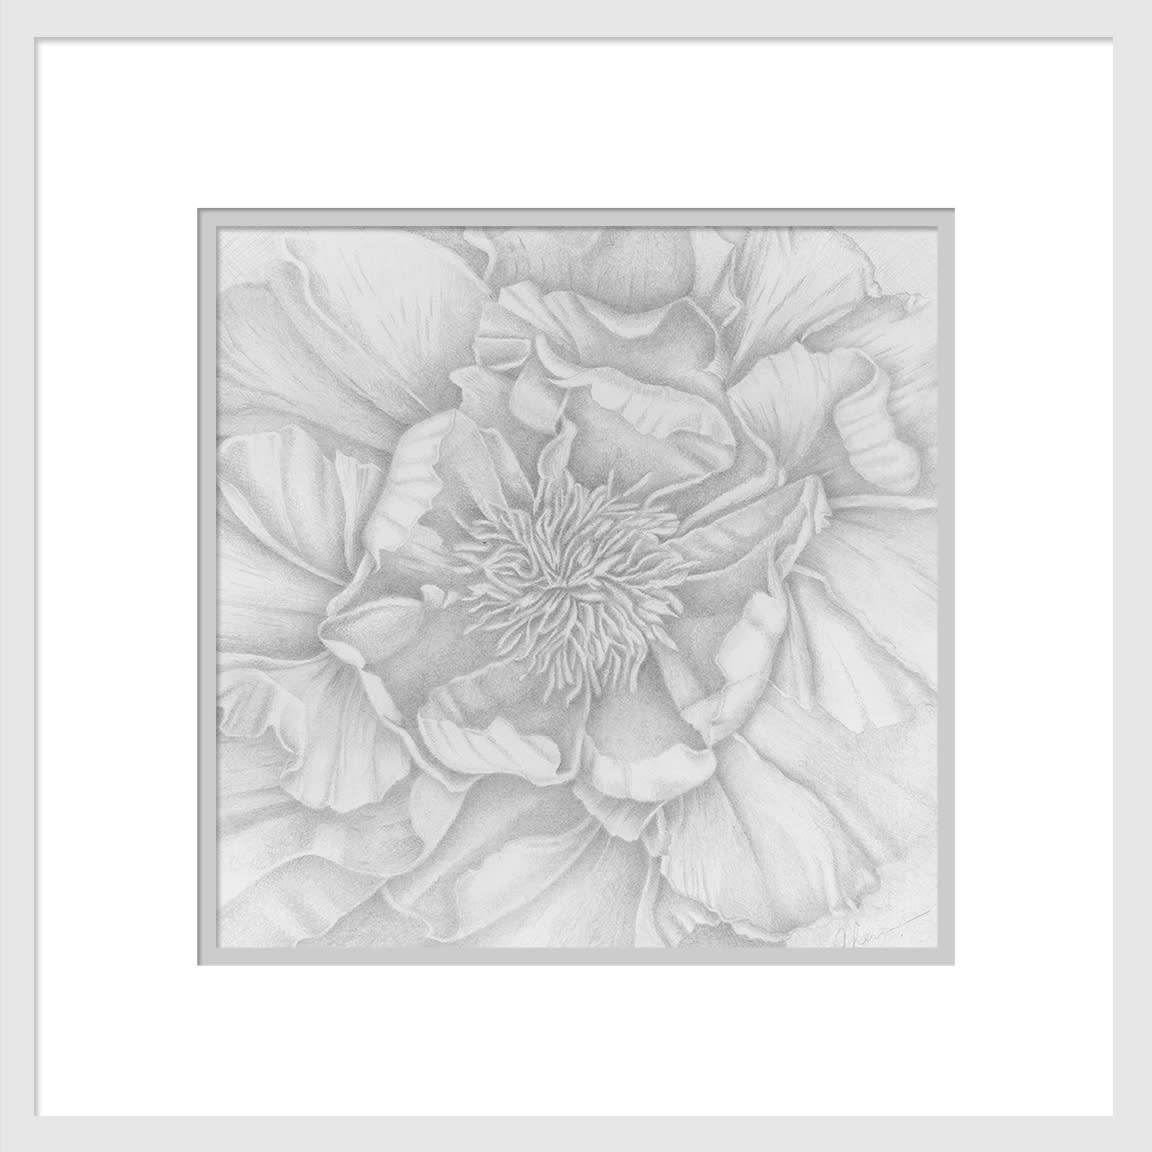 200822 in my neighborhood tree peony drawing 10x10 matted to 16x16 n839cb